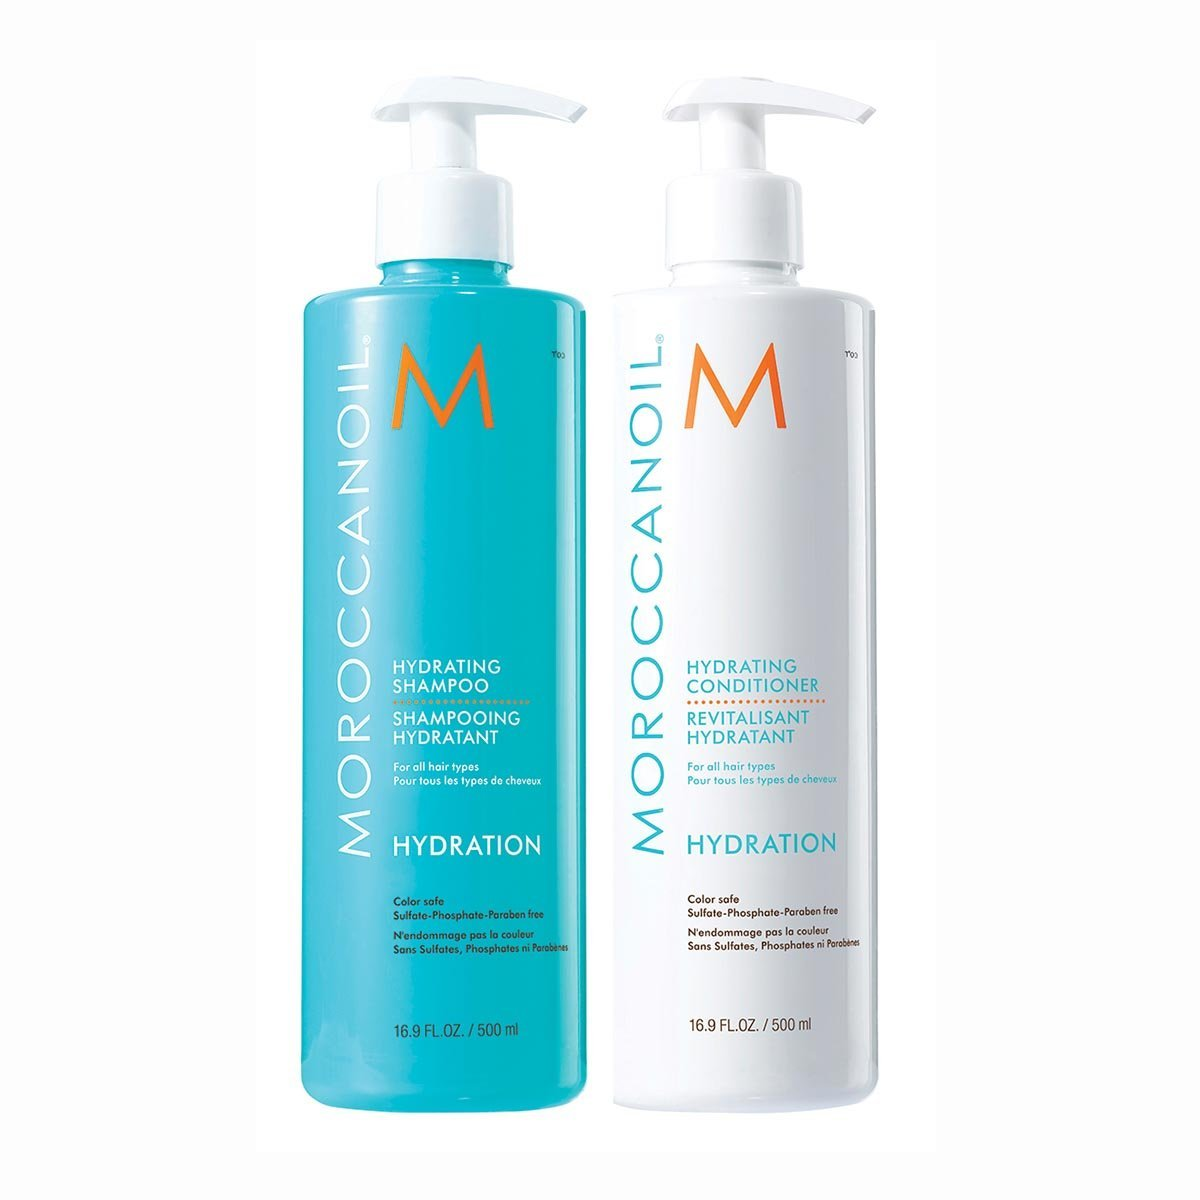 MOROCCANOIL HYDRATION SHAMPOO CONDITIONER